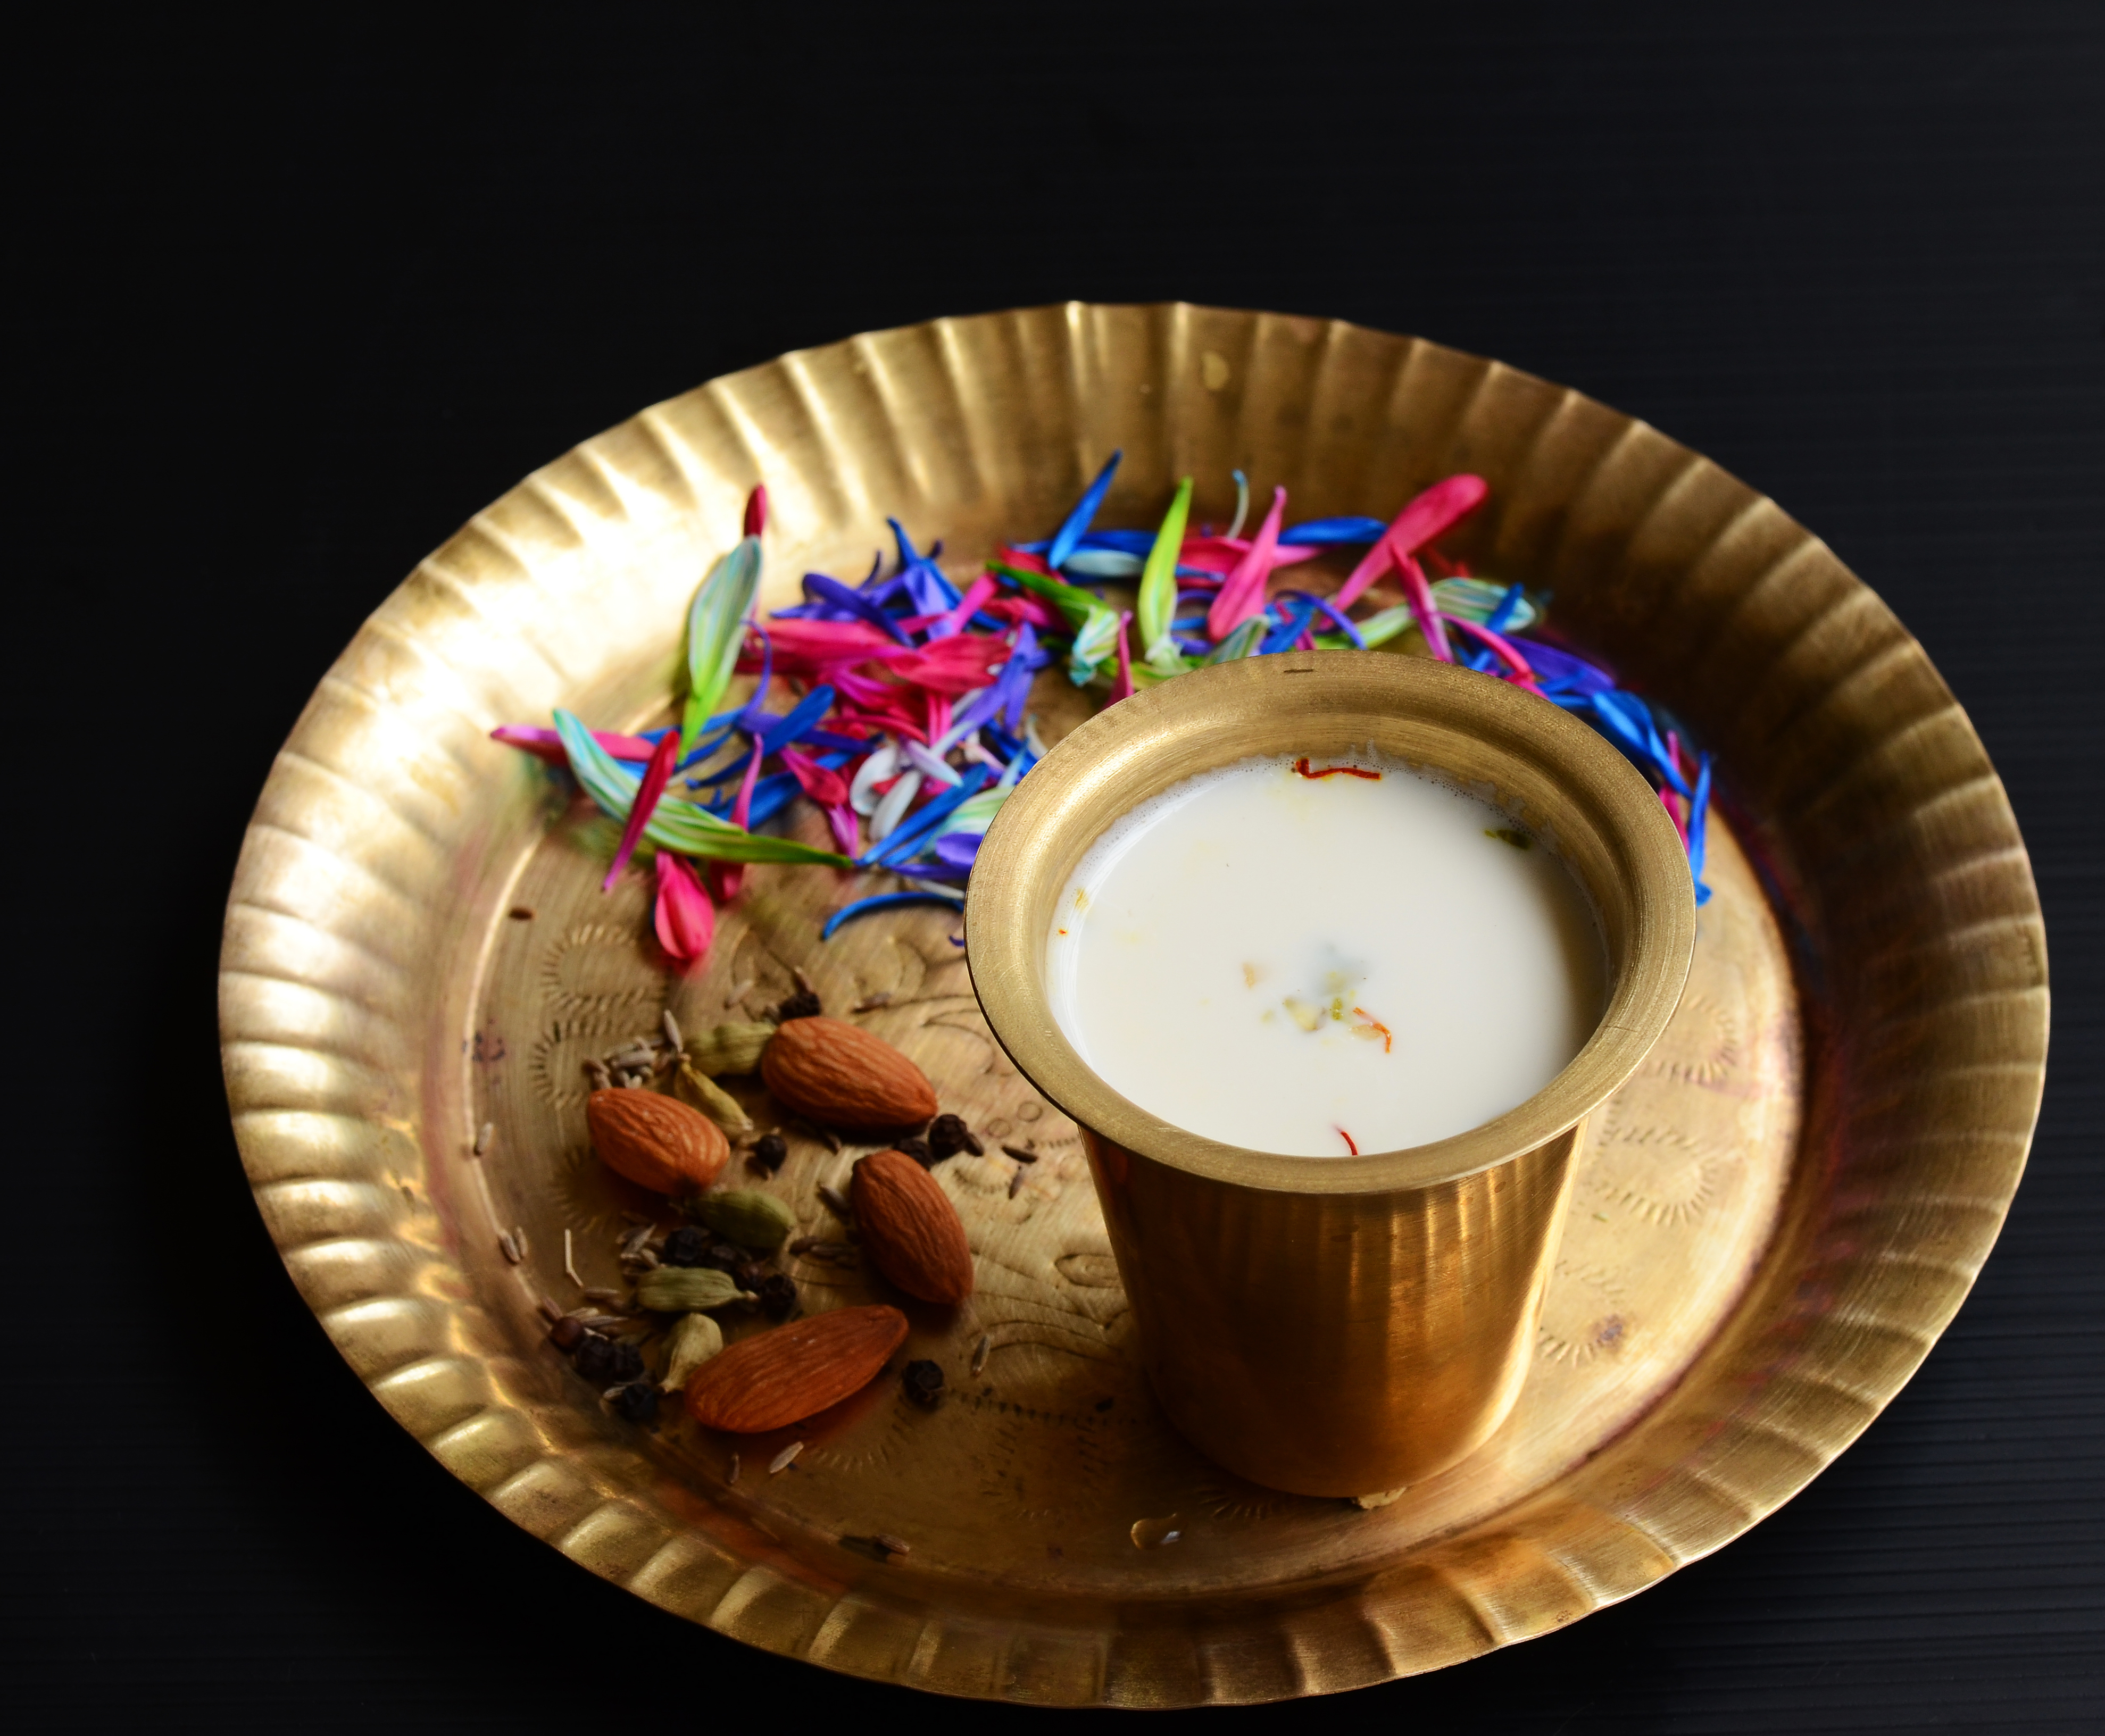 thandai, Scrumptious Bhang Delicacies, holi food & drinks, holi celebration ideas